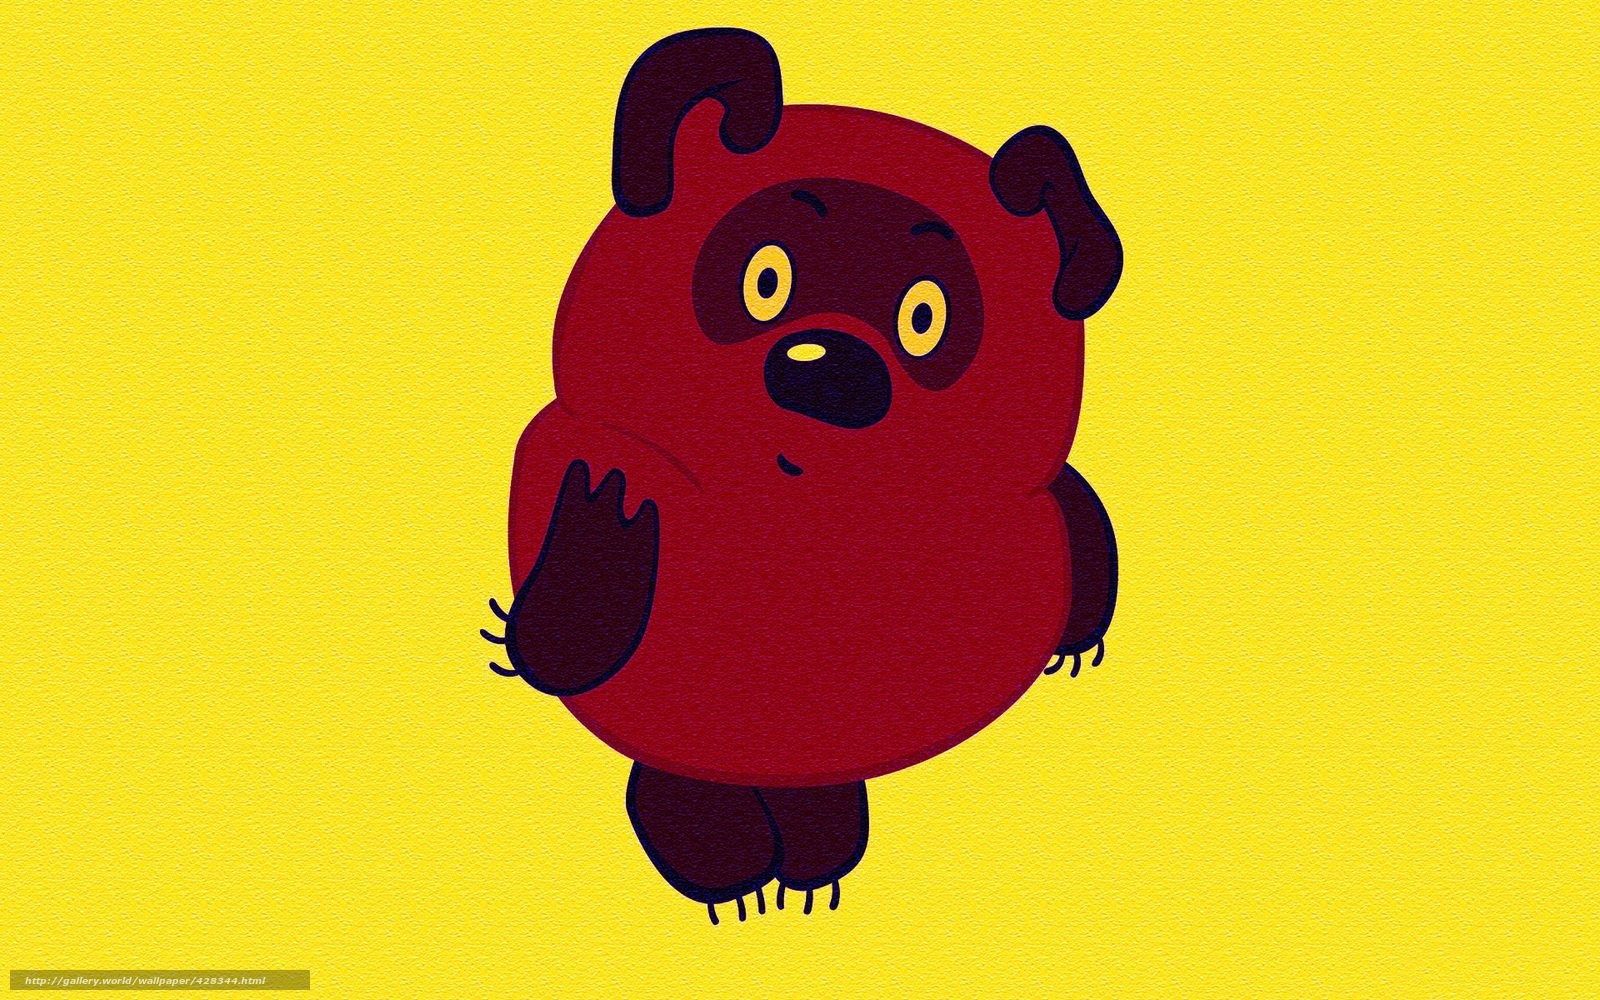 download wallpaper yellow background character winnie